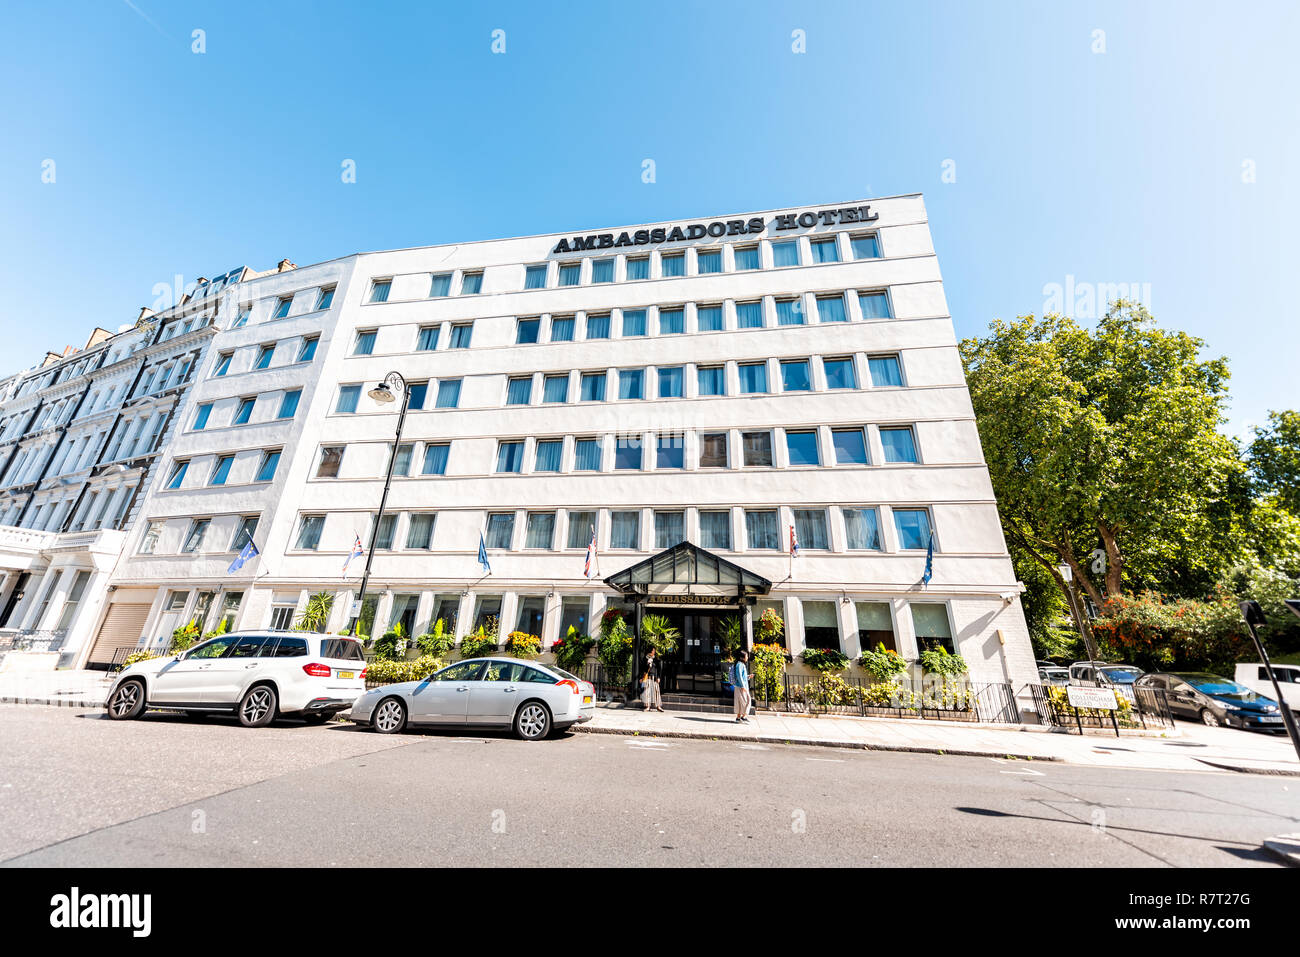 London, UK - September 13, 2018: Neighborhood district of Kensington, street, brick architecture, sign for Ambassadors hotel wide angle building - Stock Image